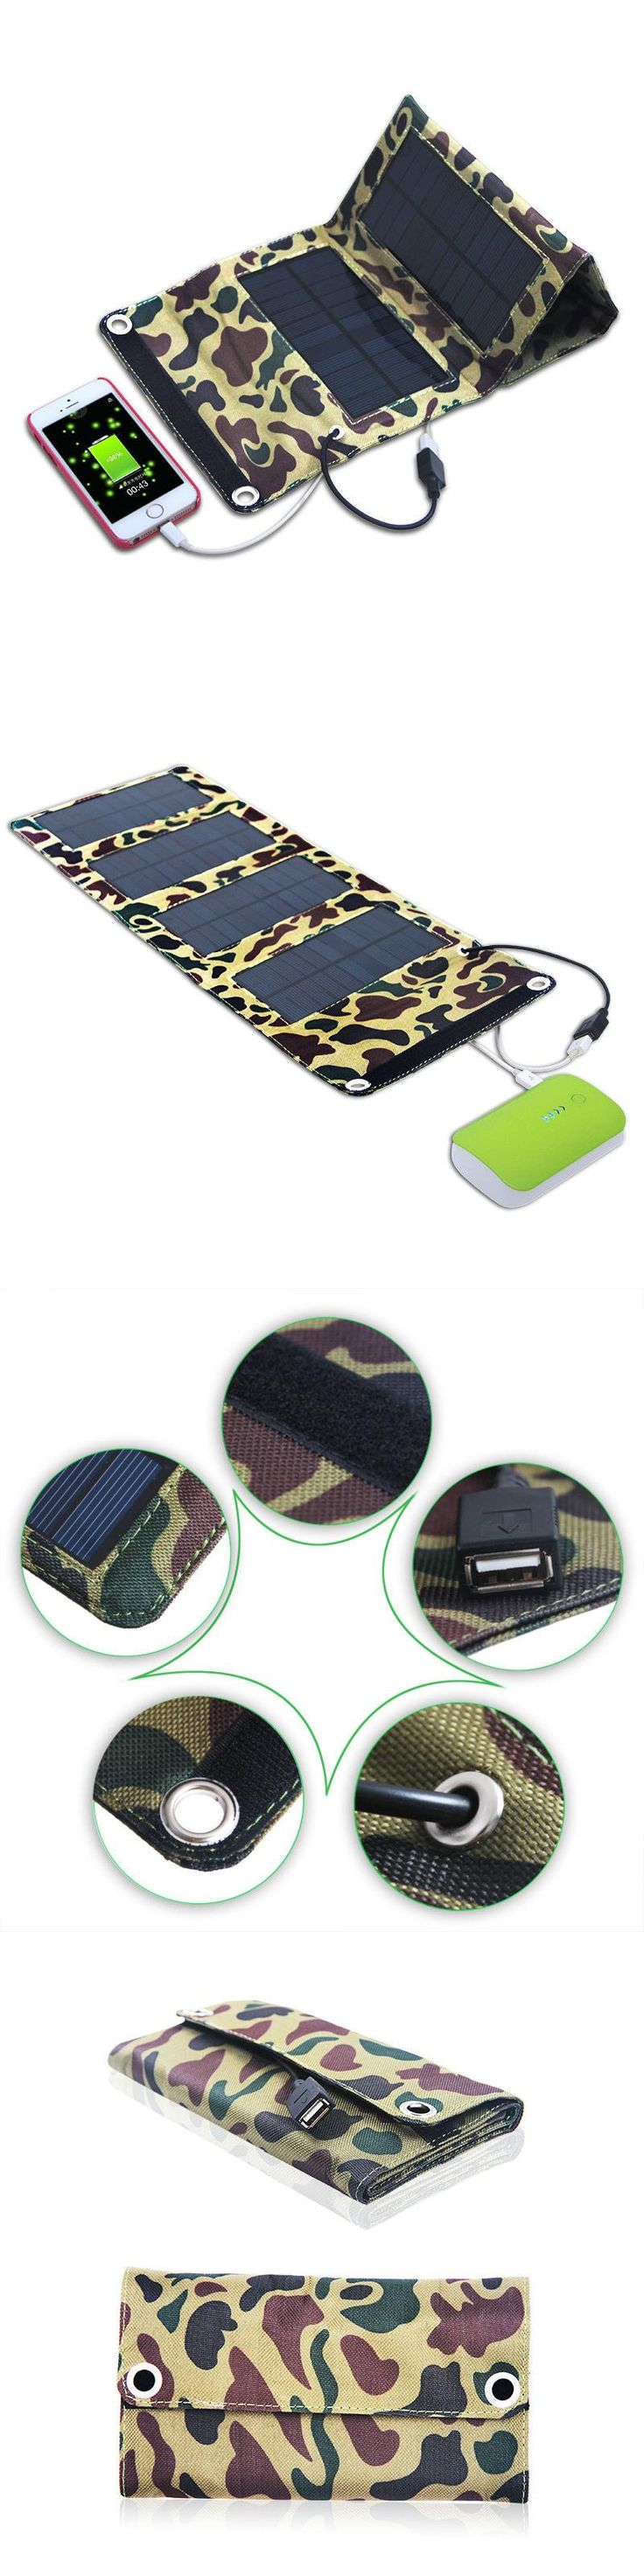 7W High efficiency 4 folded Como Solar Charger with internal USB Port solar panel bag for iPhone 6s/6Plus,Pad,Galaxy S6 and More